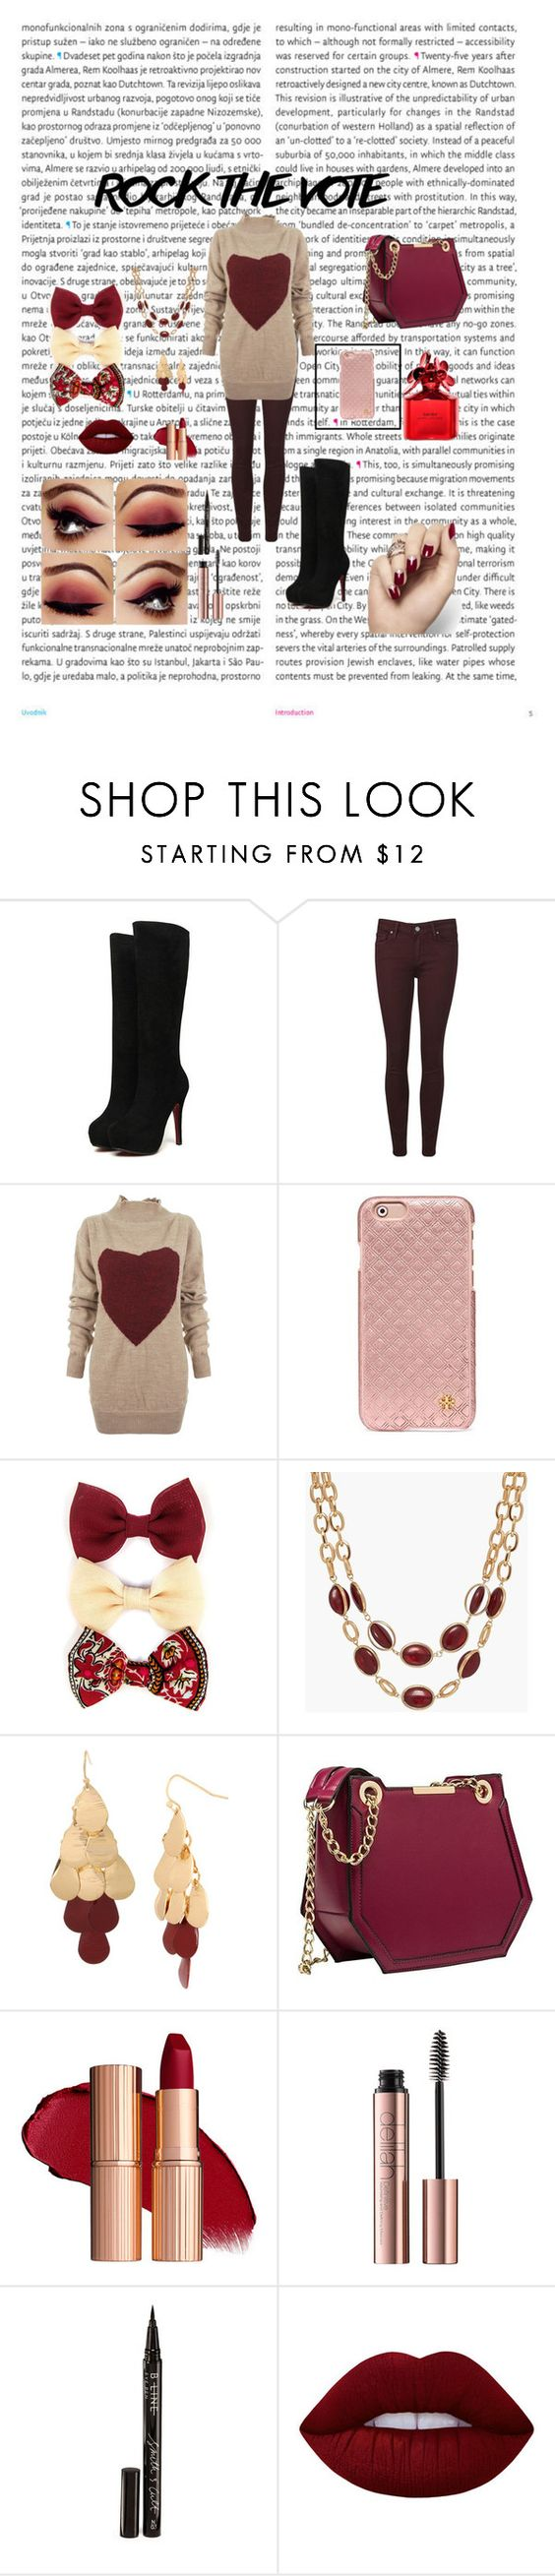 """""""Rock the Vote 🇺🇸"""" by sbanean ❤ liked on Polyvore featuring Oris, Paige Denim, Vivienne Westwood Anglomania, Tory Burch, Carole, Talbots, Boutique+, Smith & Cult, Lime Crime and Marc Jacobs"""